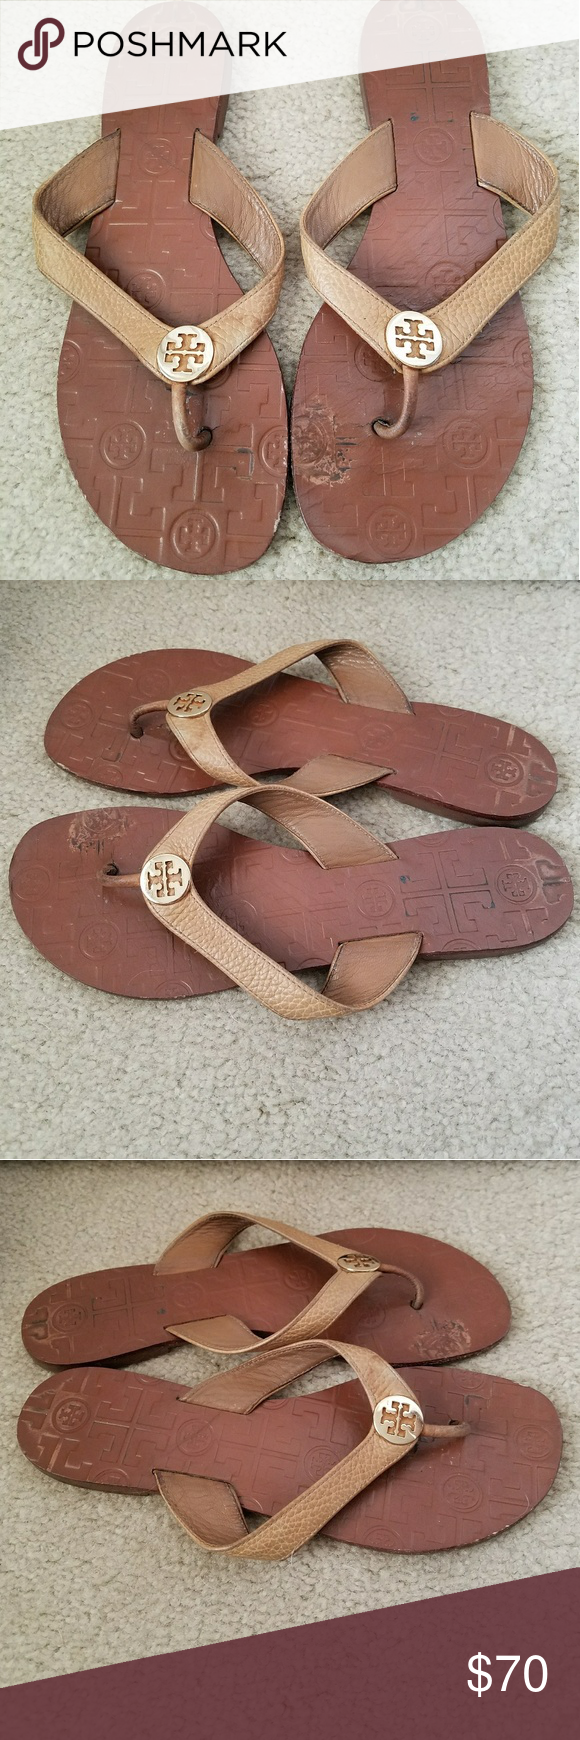 e7ac7e33748 Tory Burch Tan Leather Thong Sandals Size 8 Good Pre-owned Condition! Minor  sign of wear consistent with use shown in pictures.